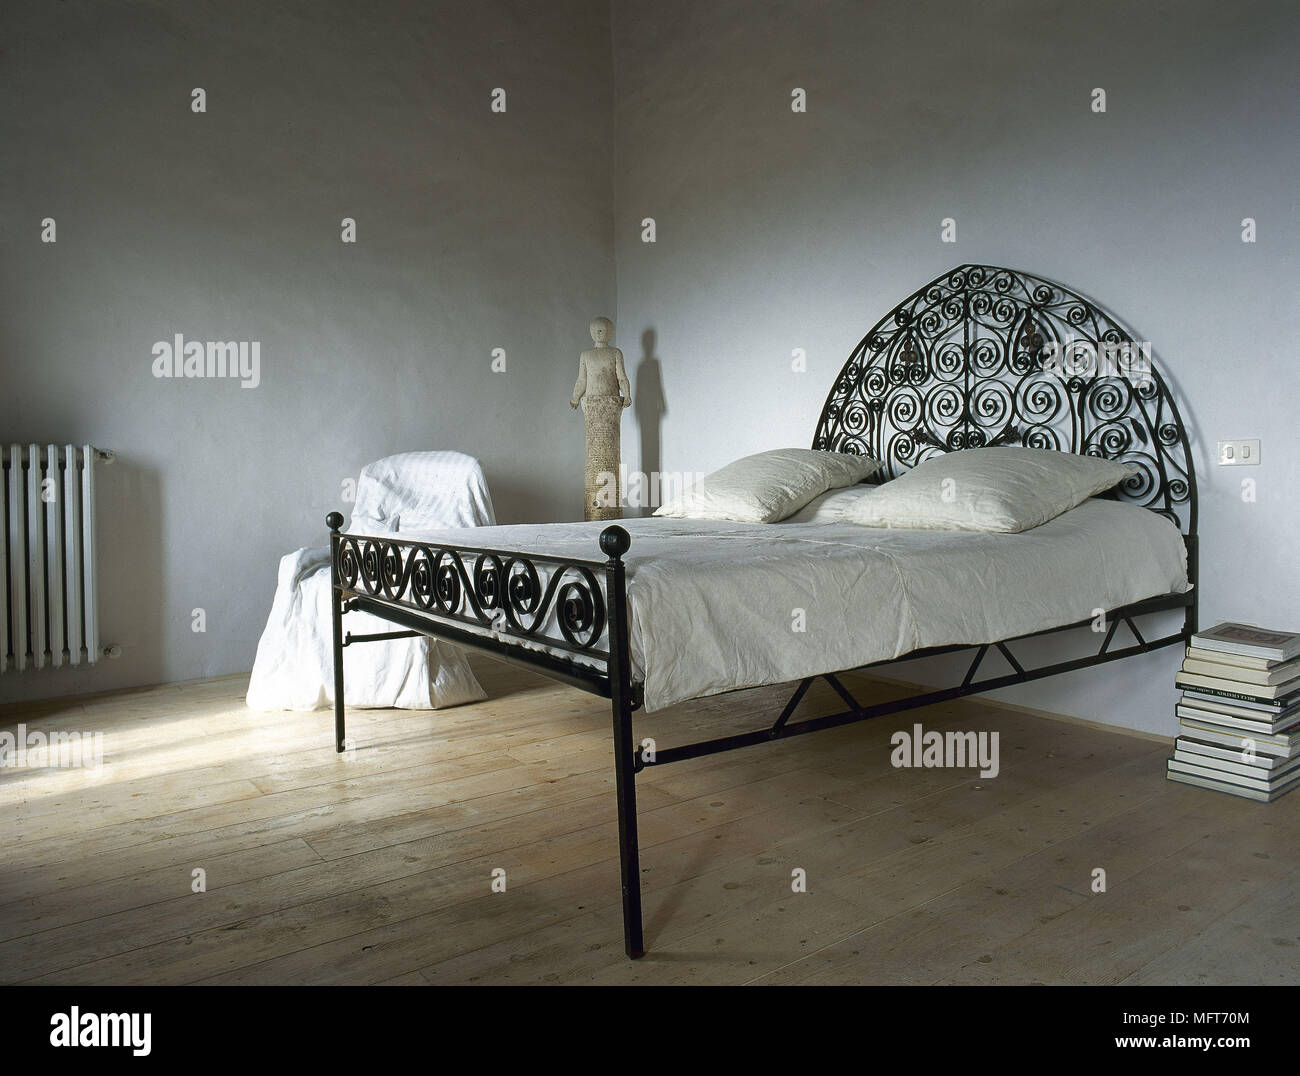 Rustic Simple Bedroom Wood Floor Wrought Iron Bed Interiors Bedrooms Minimalist Beds Country Stock Photo Alamy